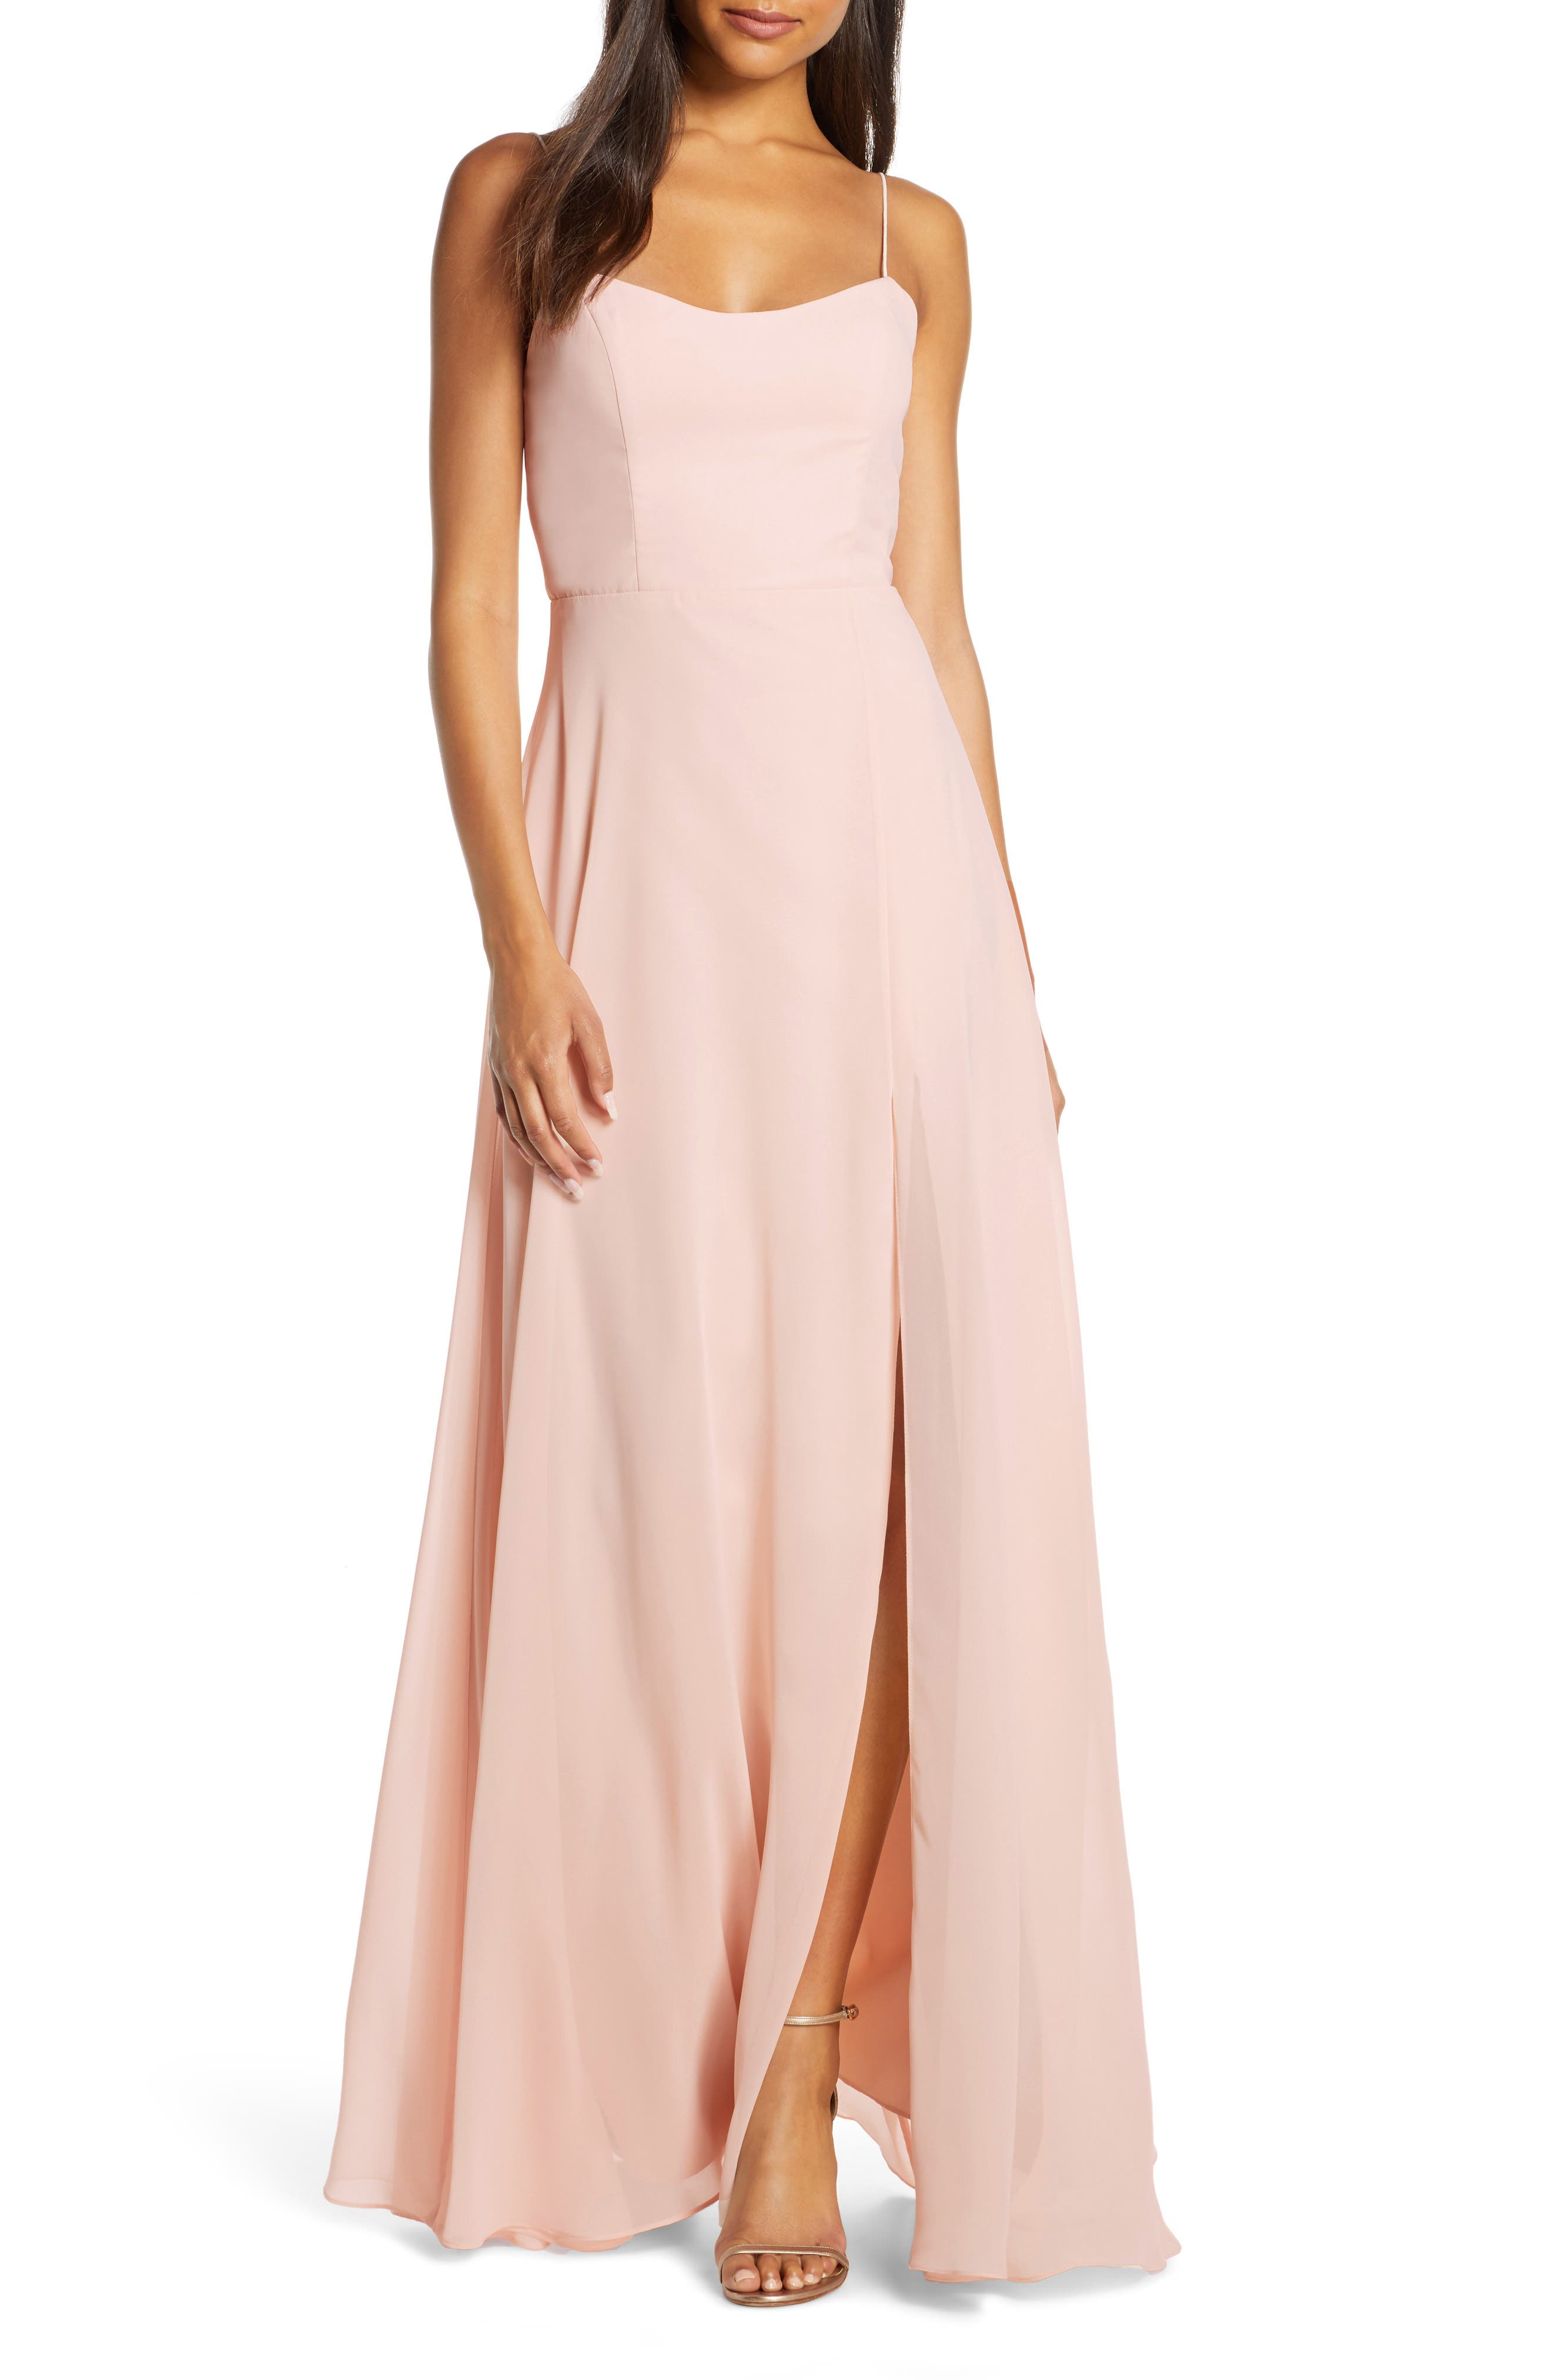 Jenny Yoo Kiara Bow Back Chiffon Evening Dress, Pink